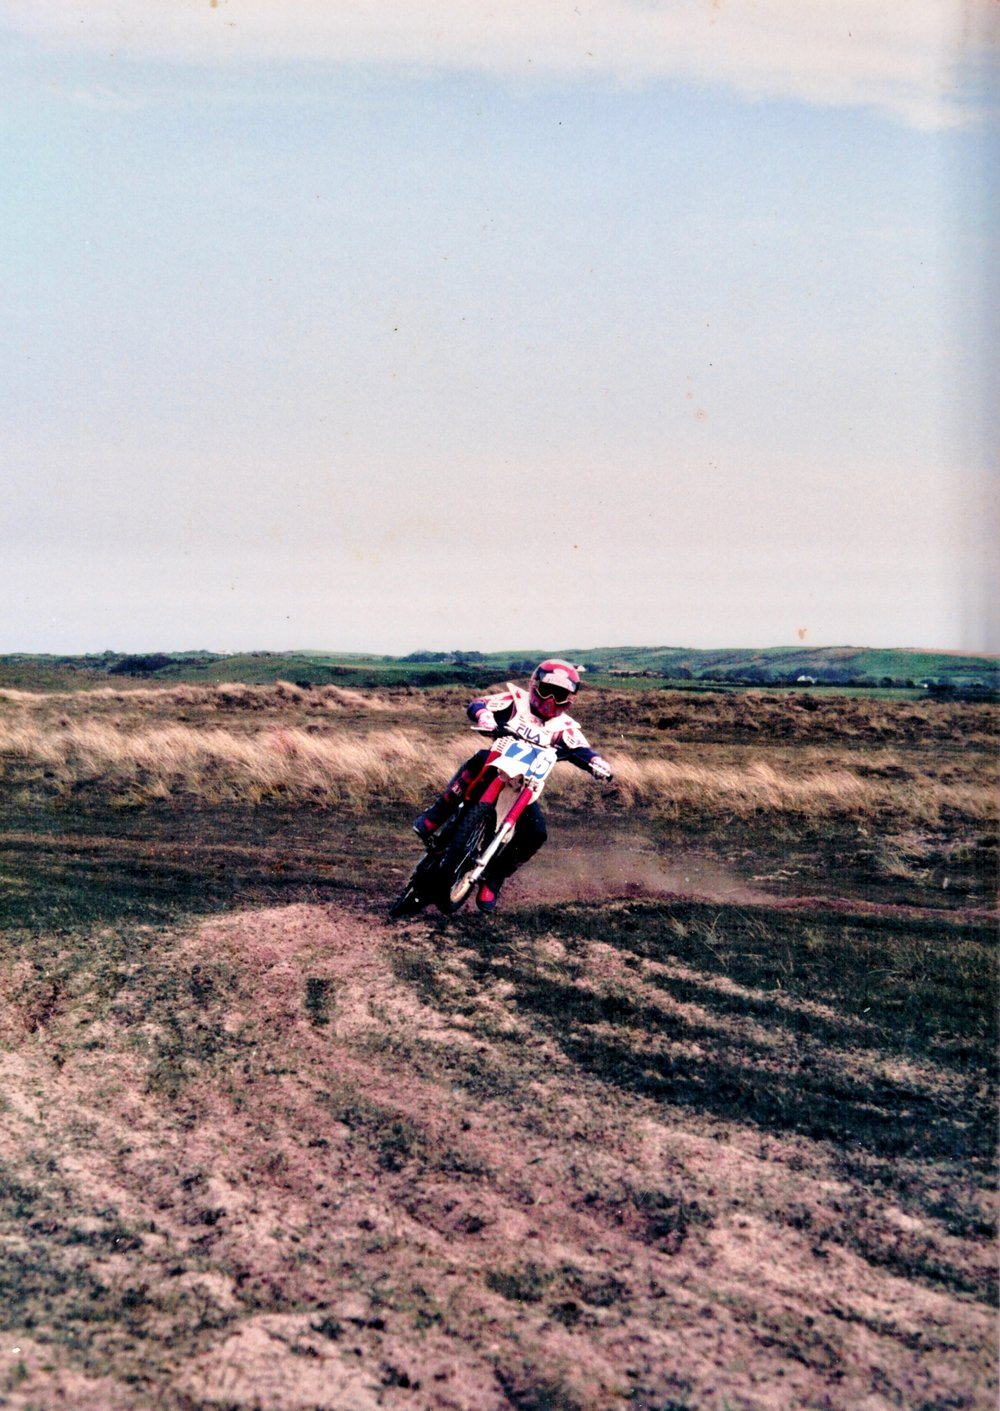 Dirt bikes were a huge part of his childhood, 1986 Isle of man TT week motocross.